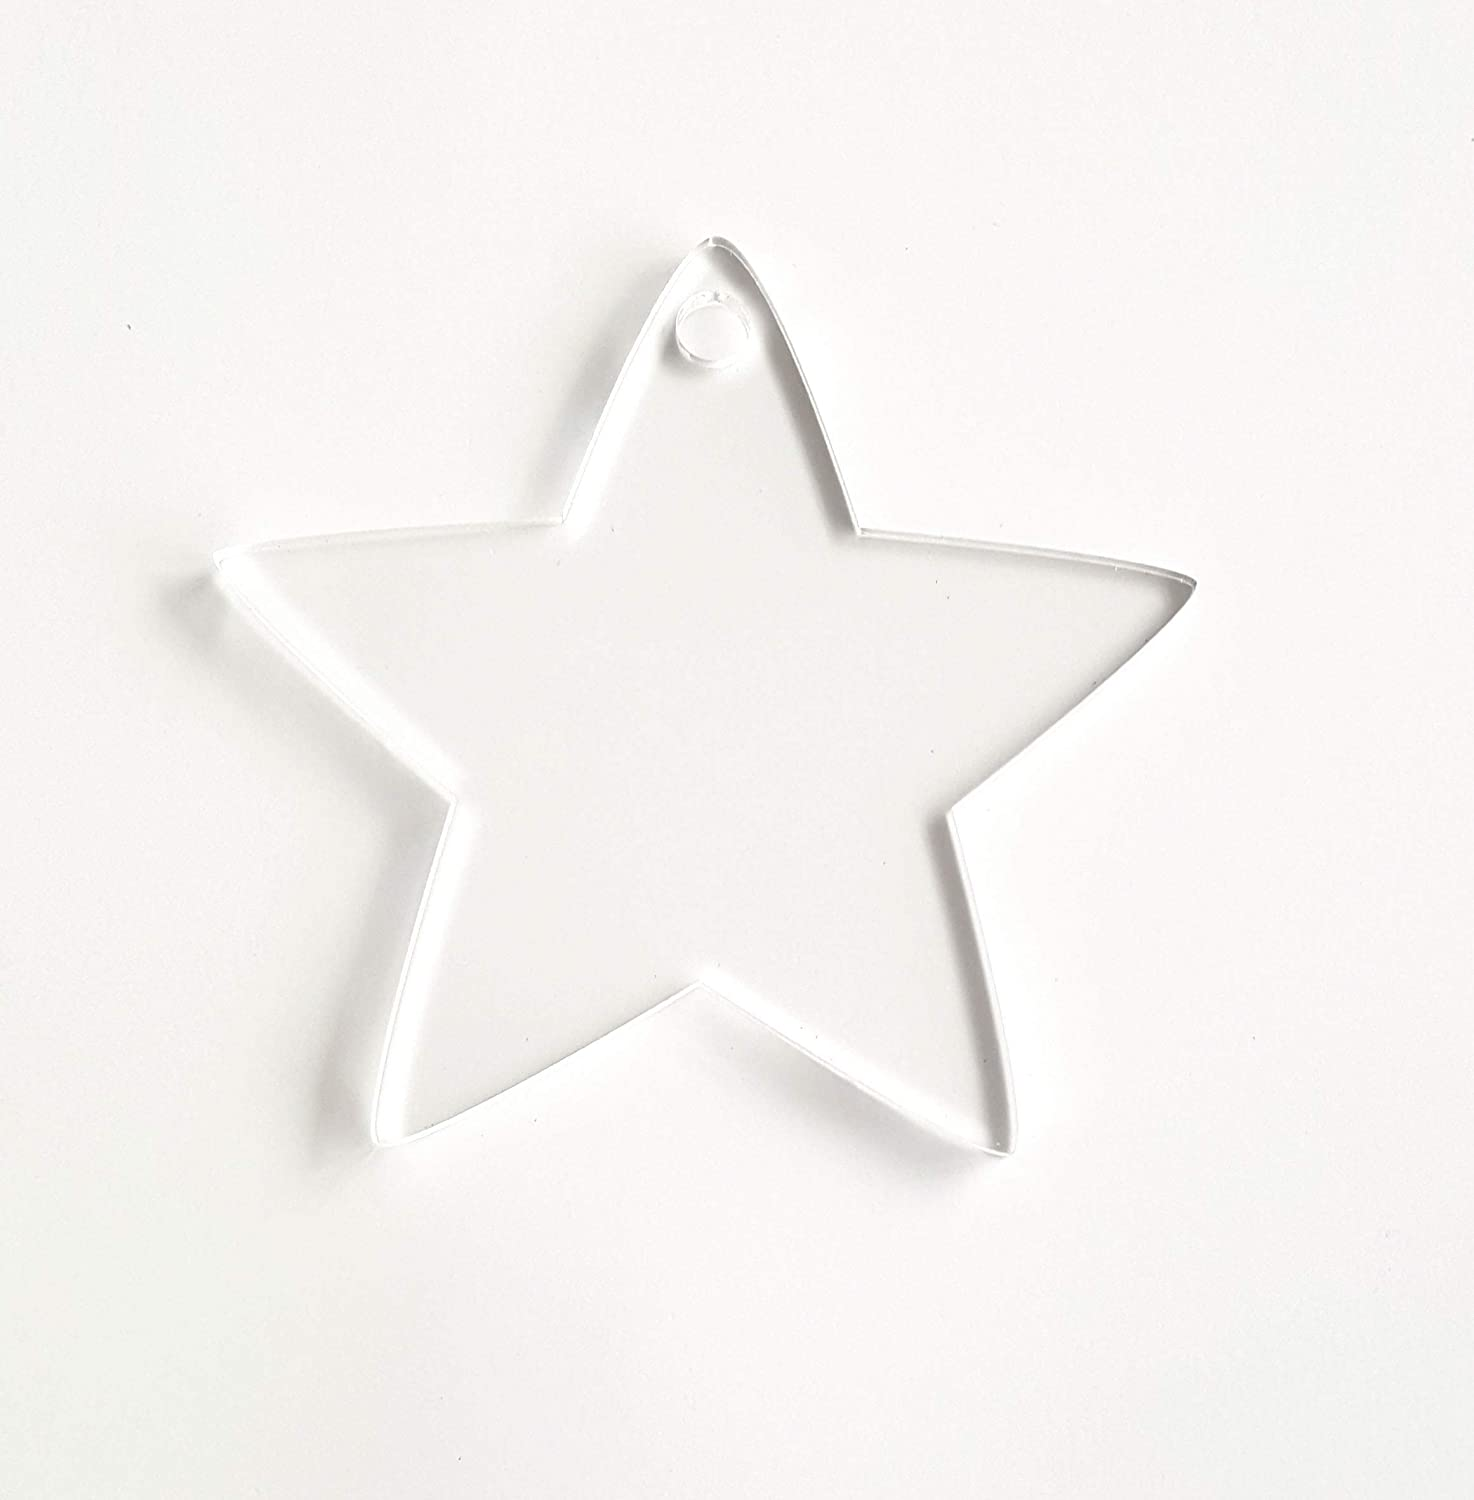 25 OFFicial OFFicial store Acrylic Christmas Ornaments Blanks Stars 1 Clear Thick 4